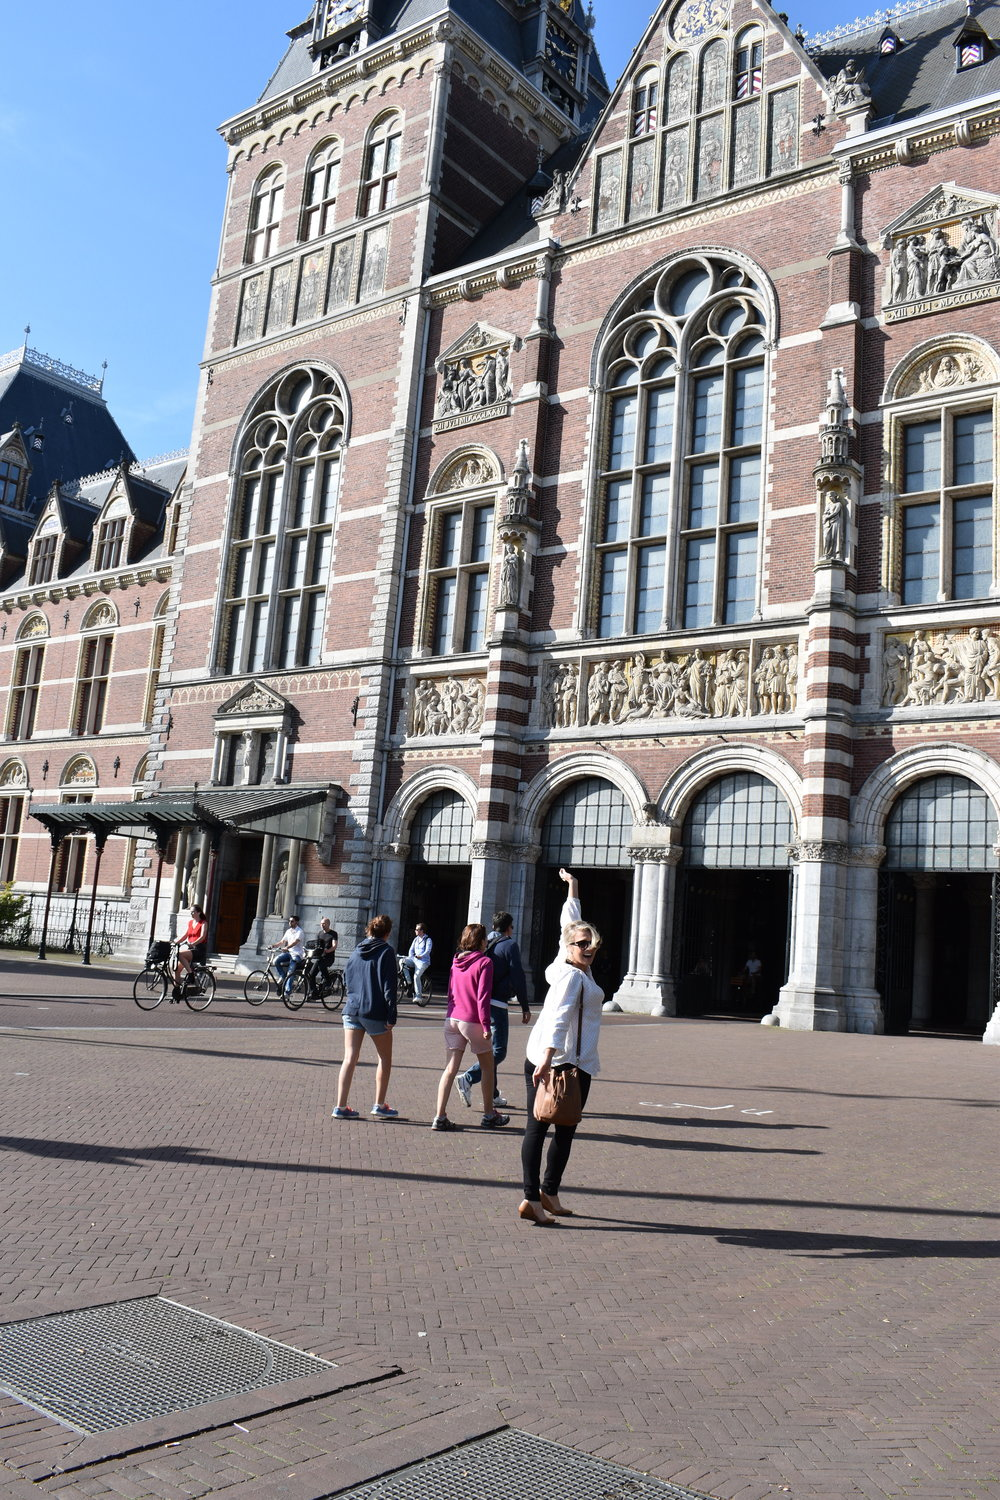 JUST LITTLE BIT EXCITED TO BE HEADING INSIDE THE FAMOUS RIJKSMUSEUM. RIJKSMUSEUM, AMSTERDAM.